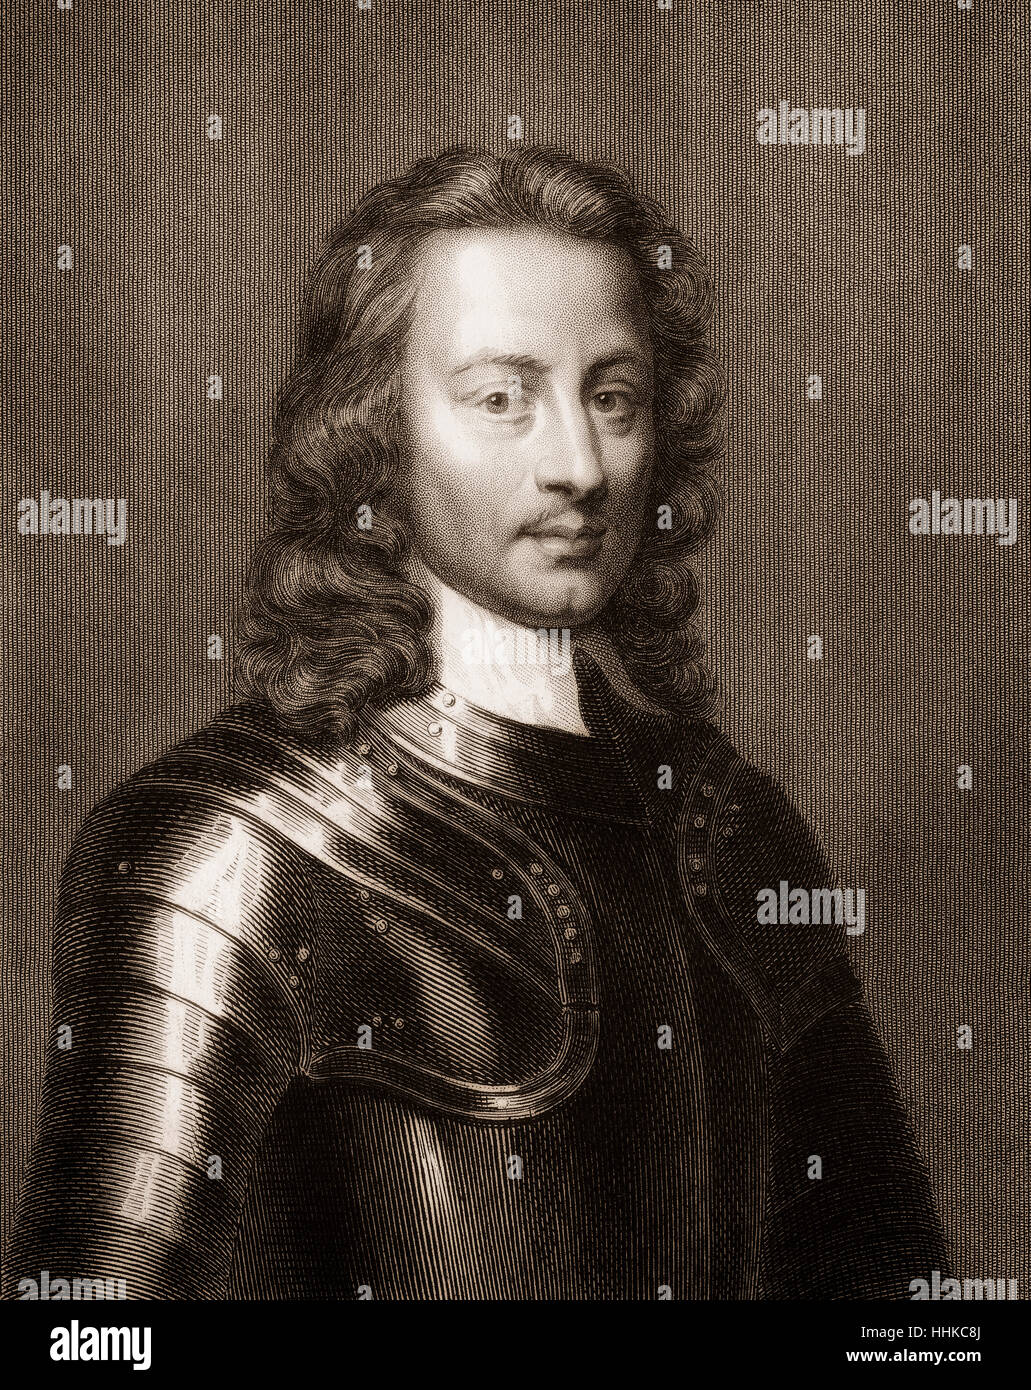 John Hampden, 1594 - 1643, a British politician - Stock Image